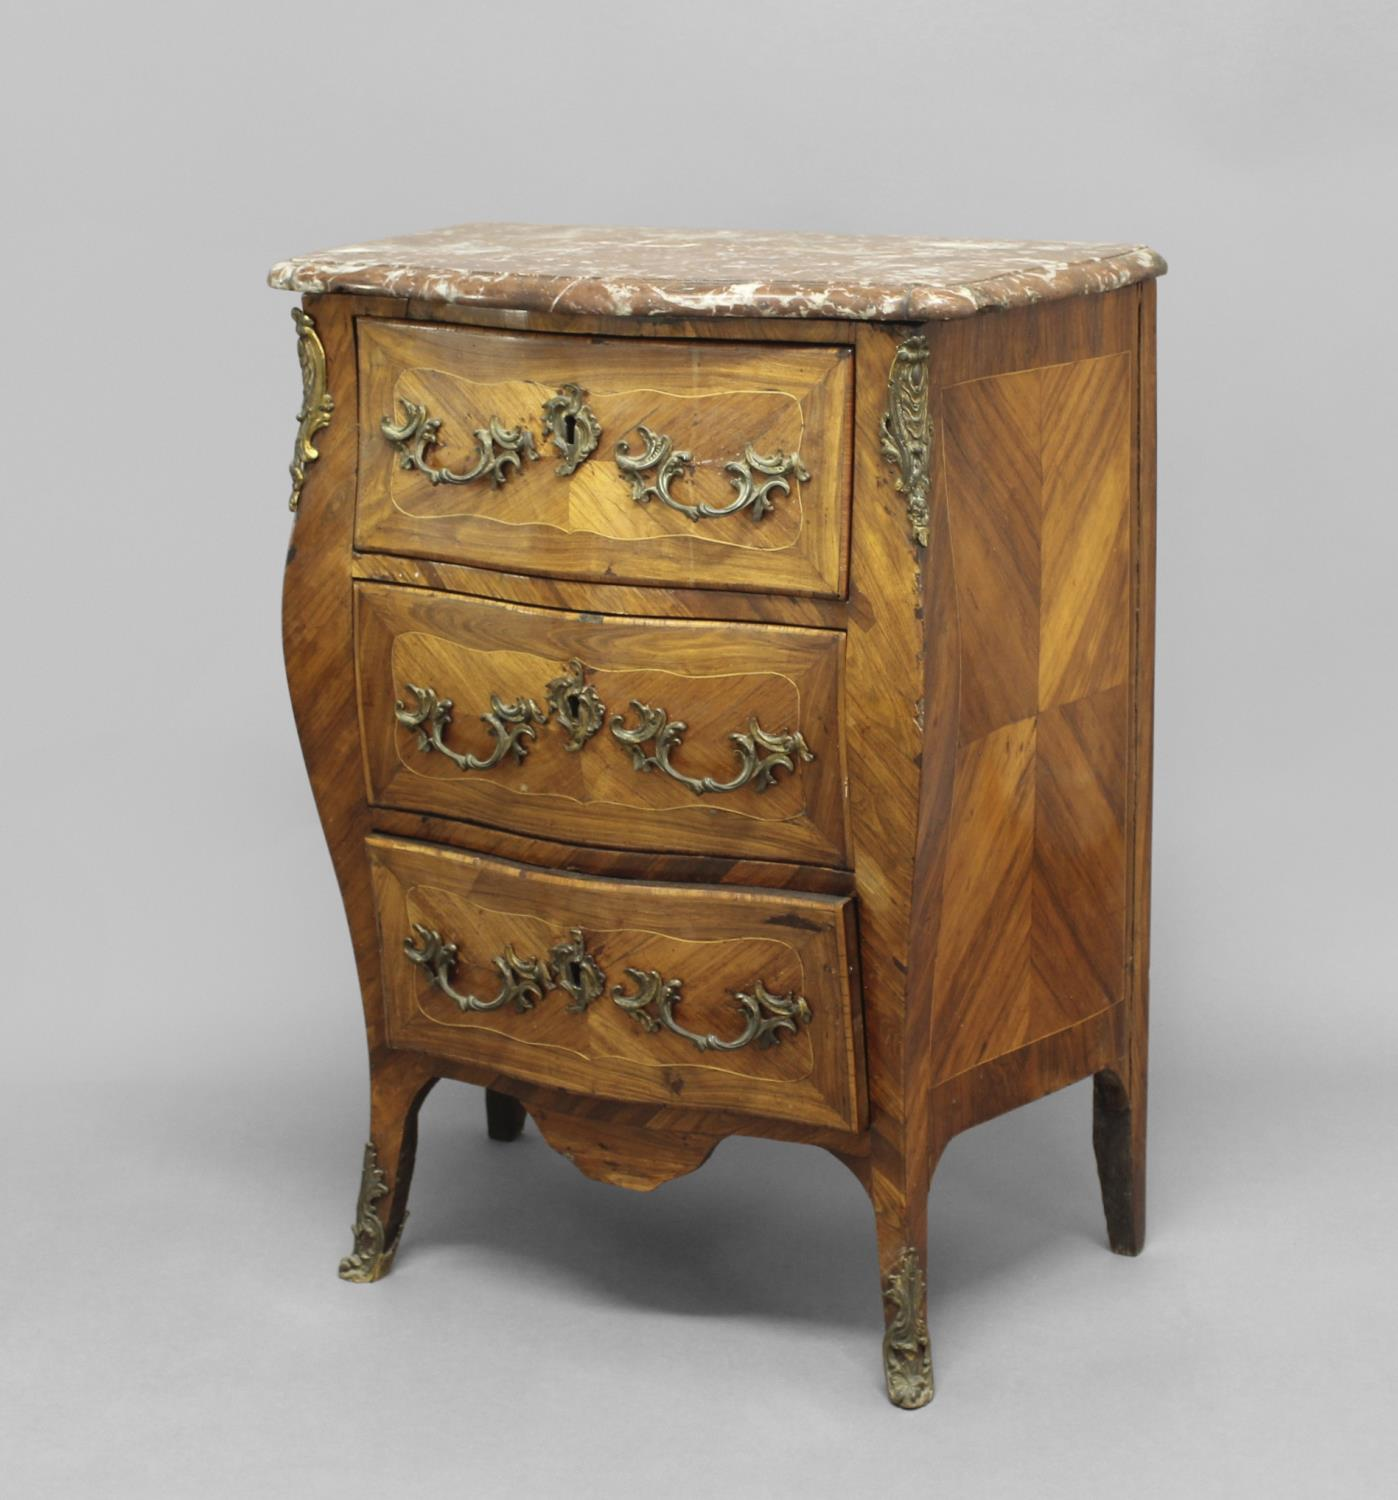 A LOUIS XV STYLE BOMBÉ MARBLE-TOPPED COMMODE, the pink marble top above three drawers with scrolling - Image 2 of 2